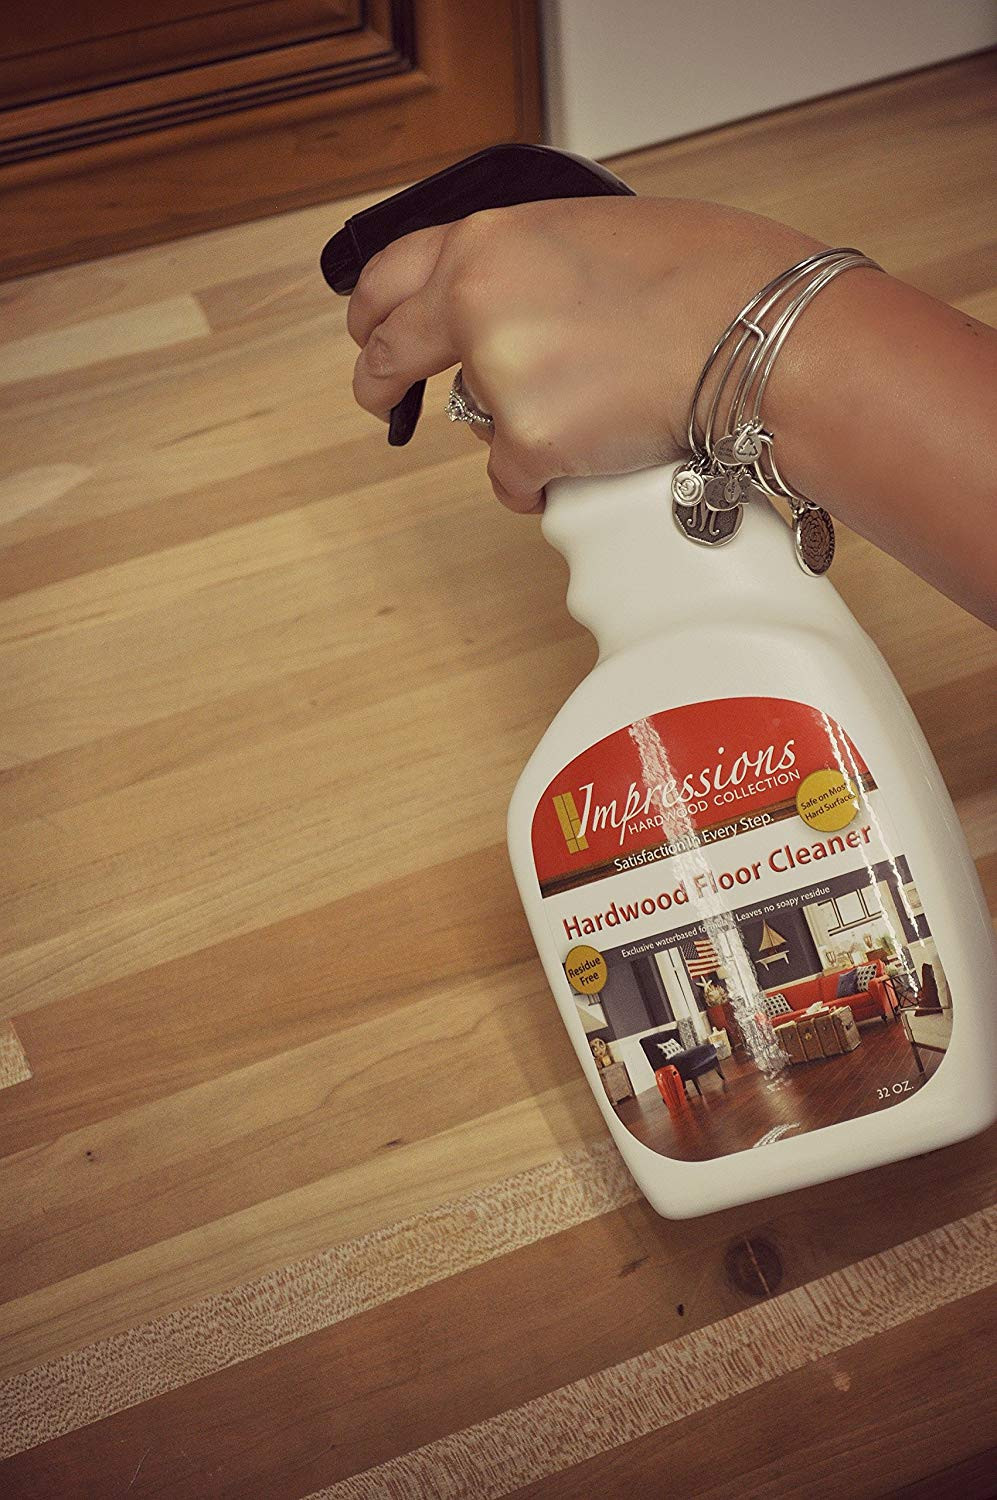 hardwood floor cleaning with white vinegar of amazon com impressions hardwood floor cleaner home kitchen with 91bniu7y84l sl1500